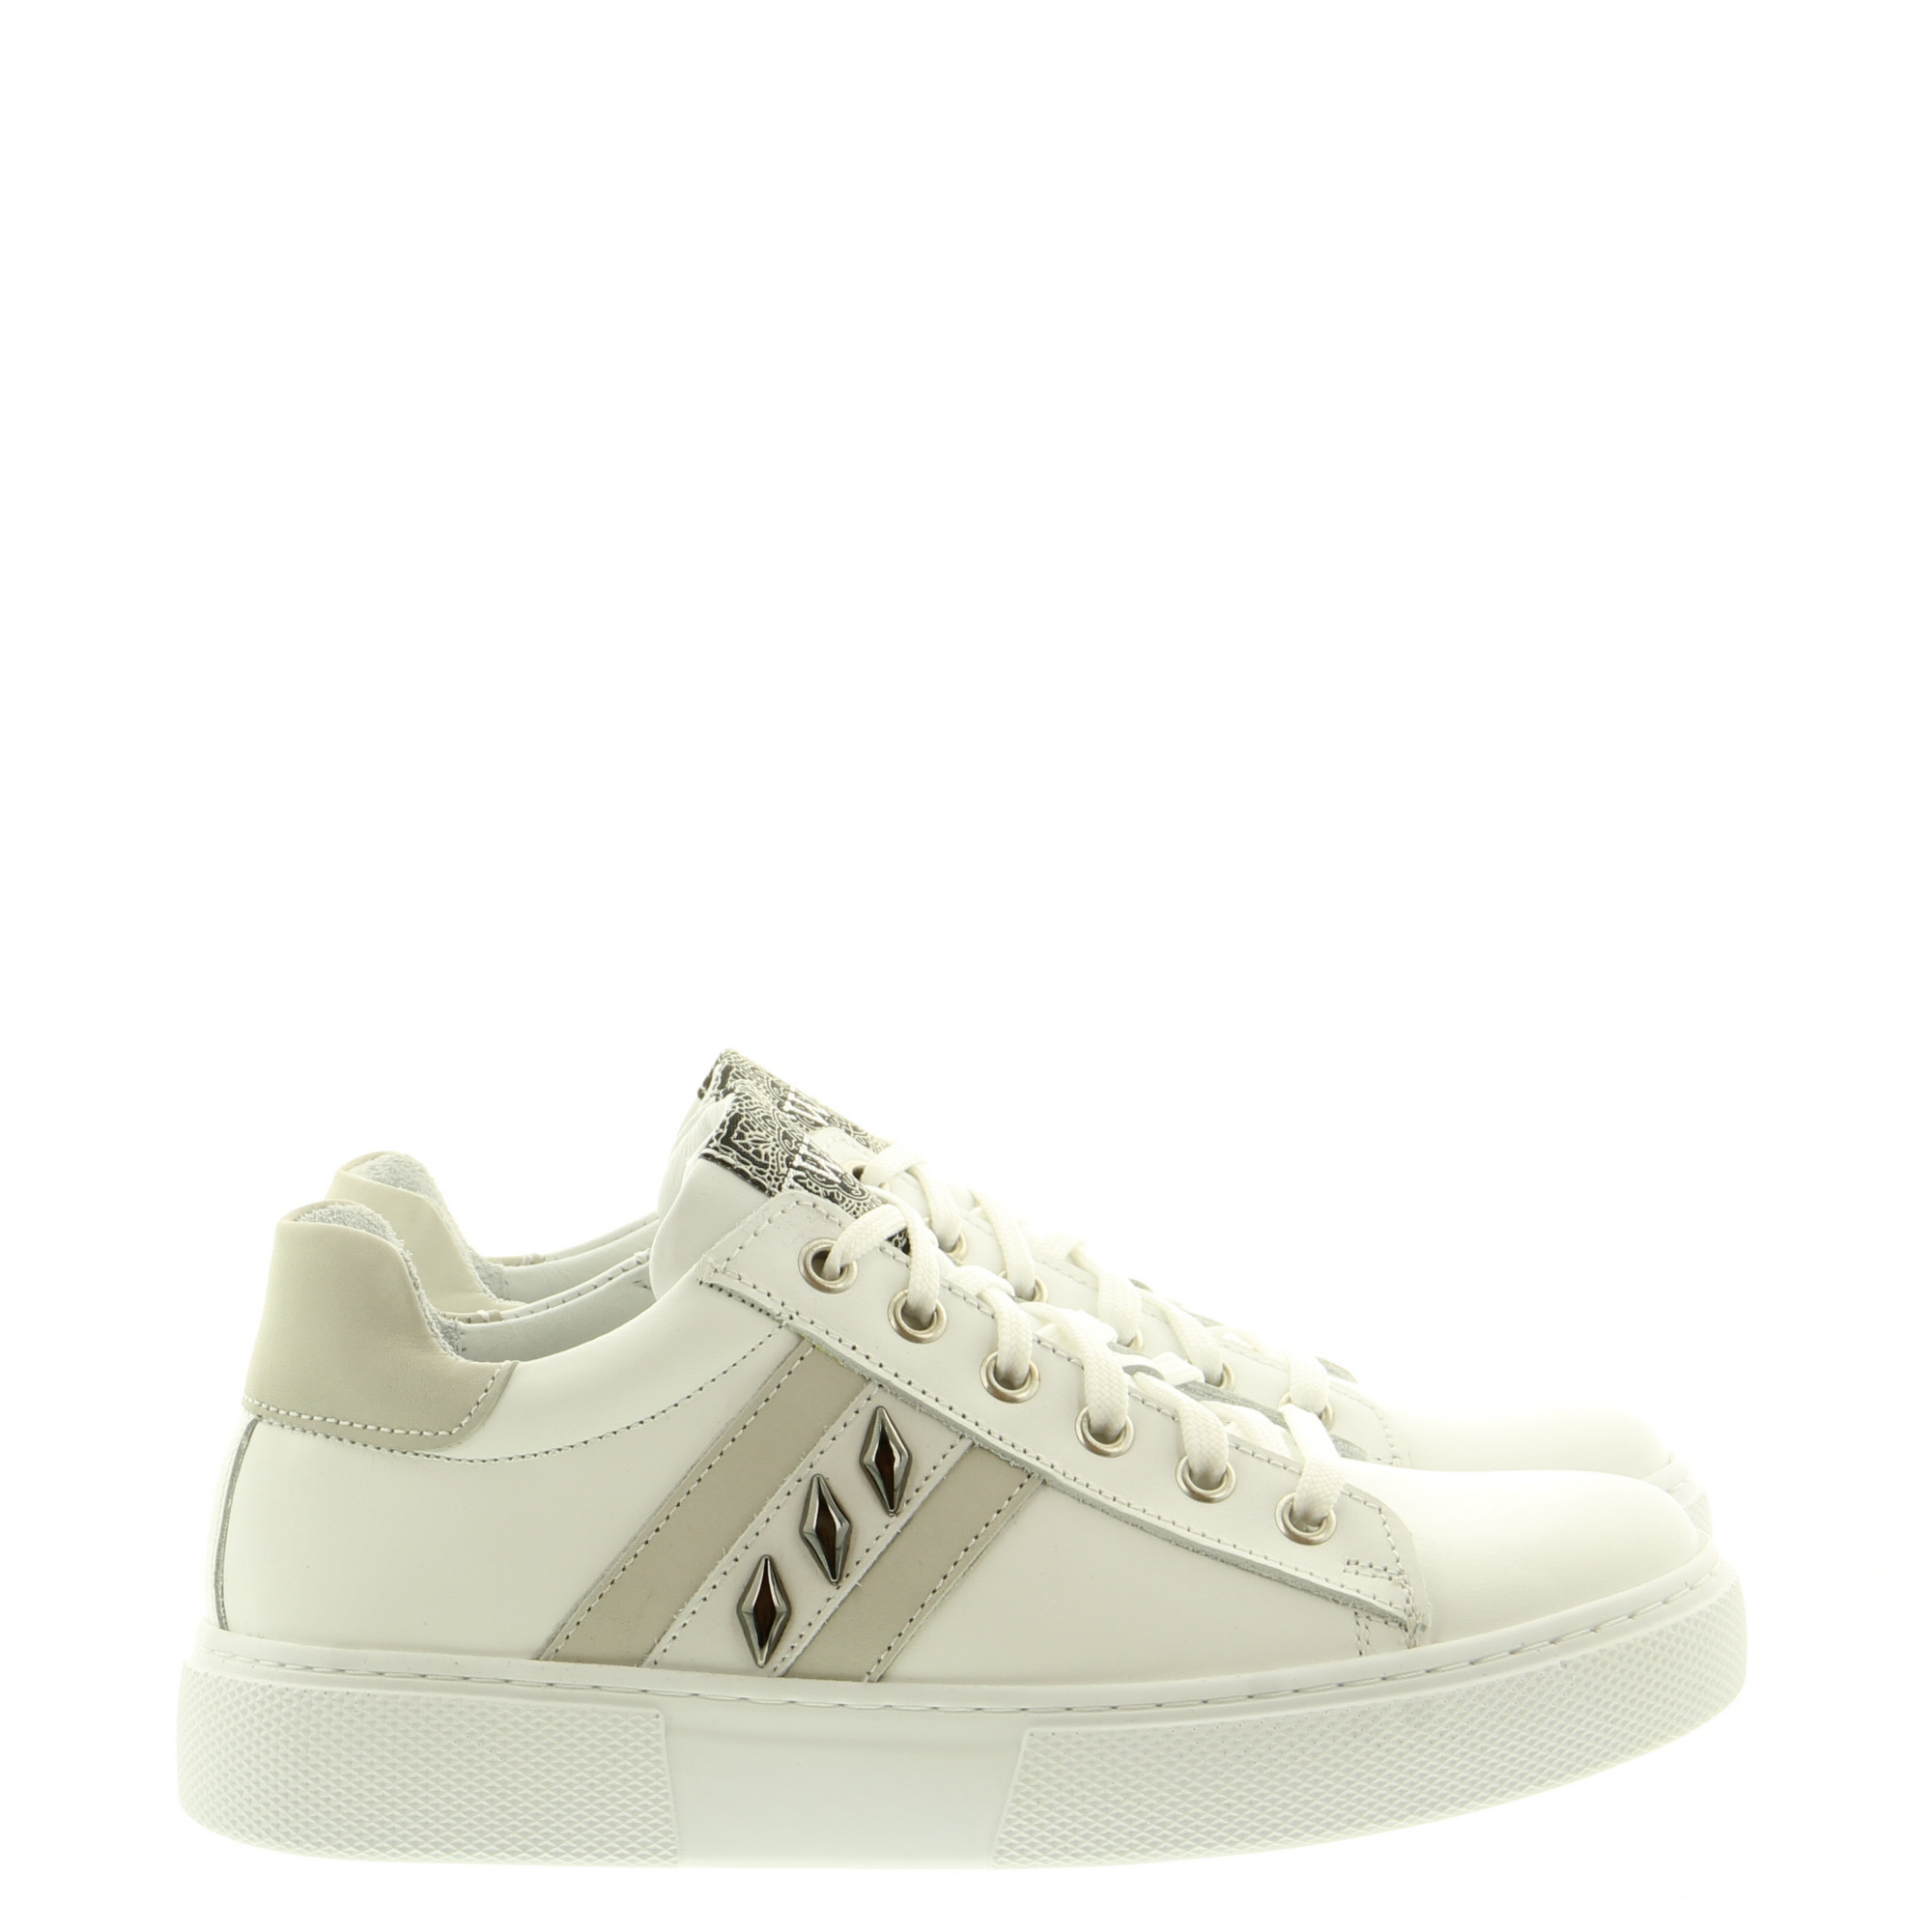 Twins Trackstyle 321165 600 White